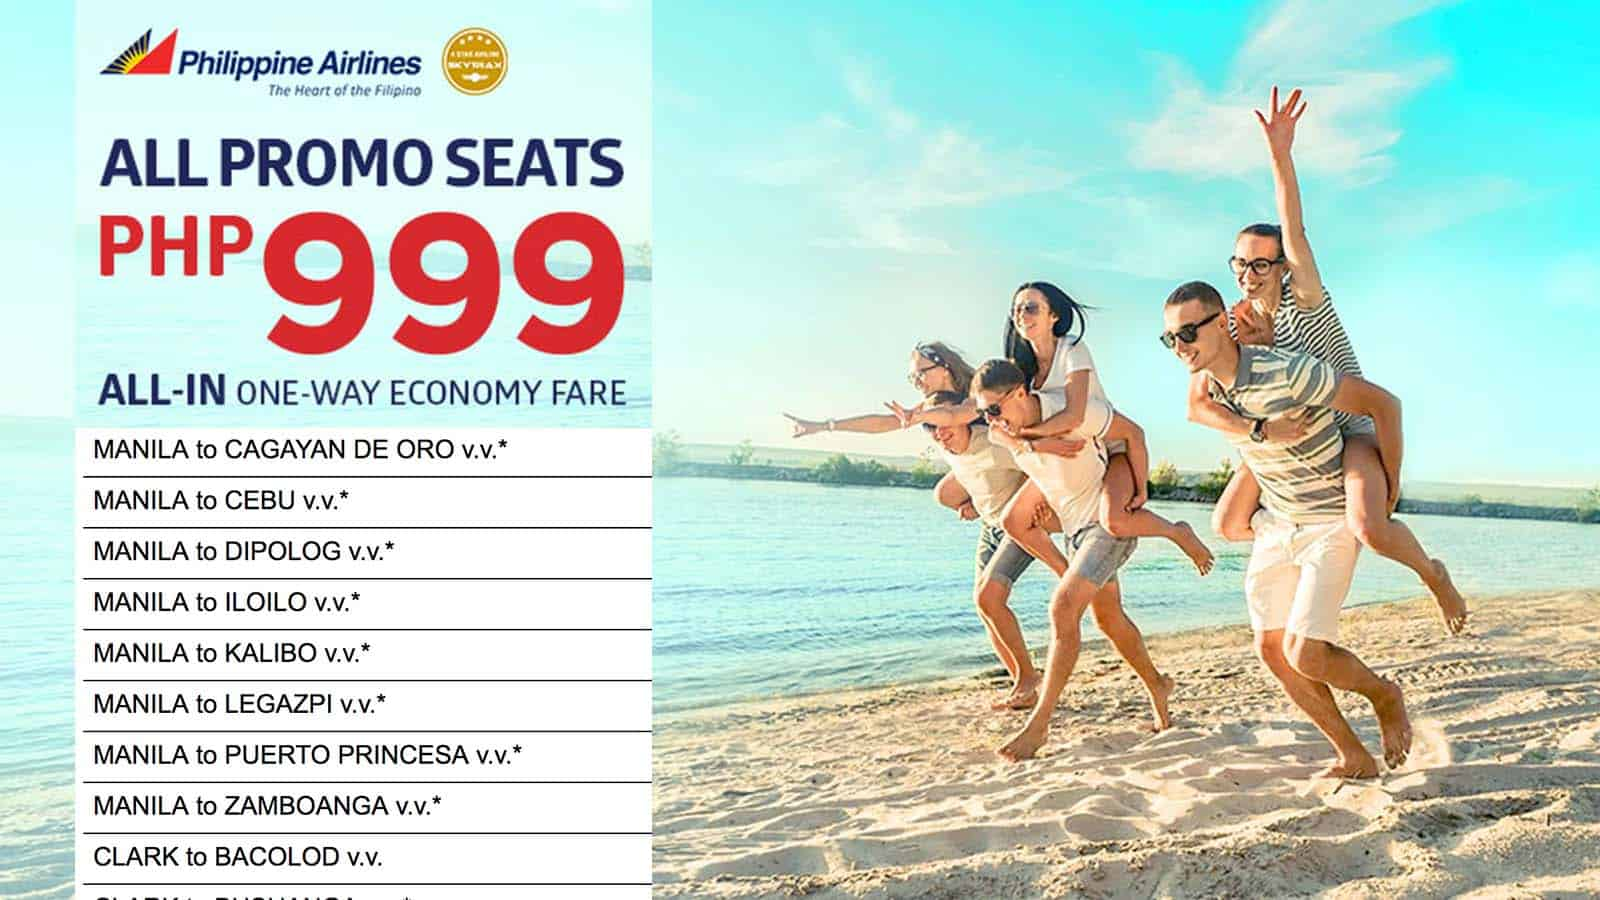 PHILIPPINE AIRLINES PROMO FLIGHTS 2018 (And How to Book Successfully)